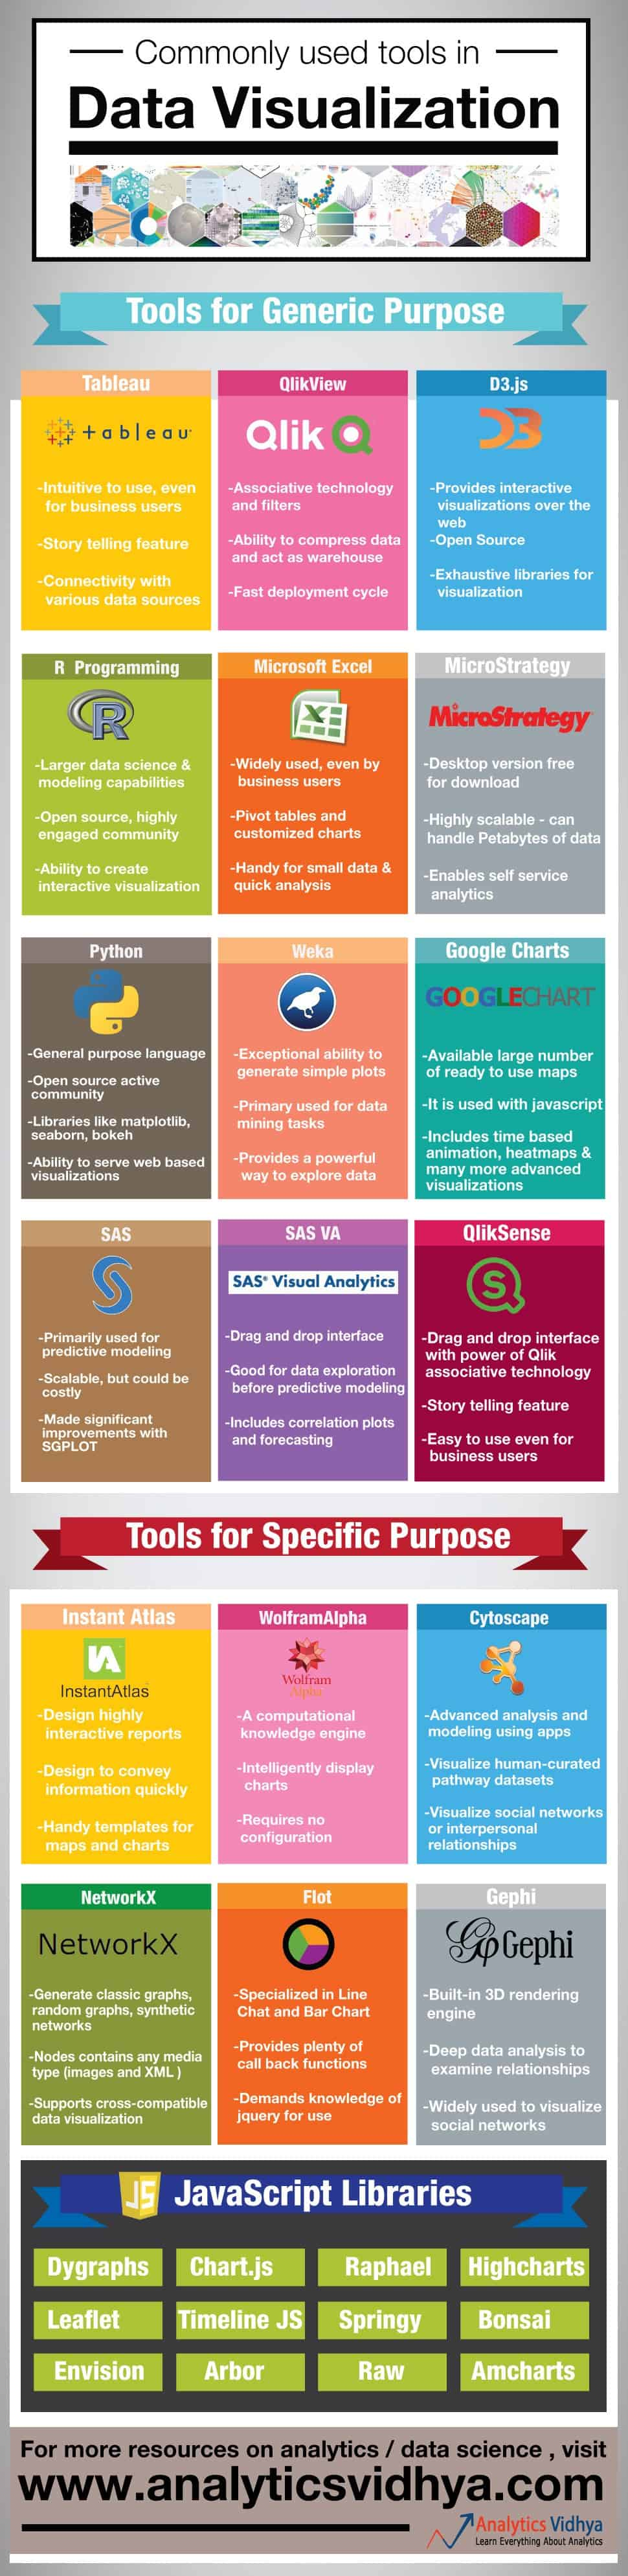 Commonly used tools in Data Visualization photo